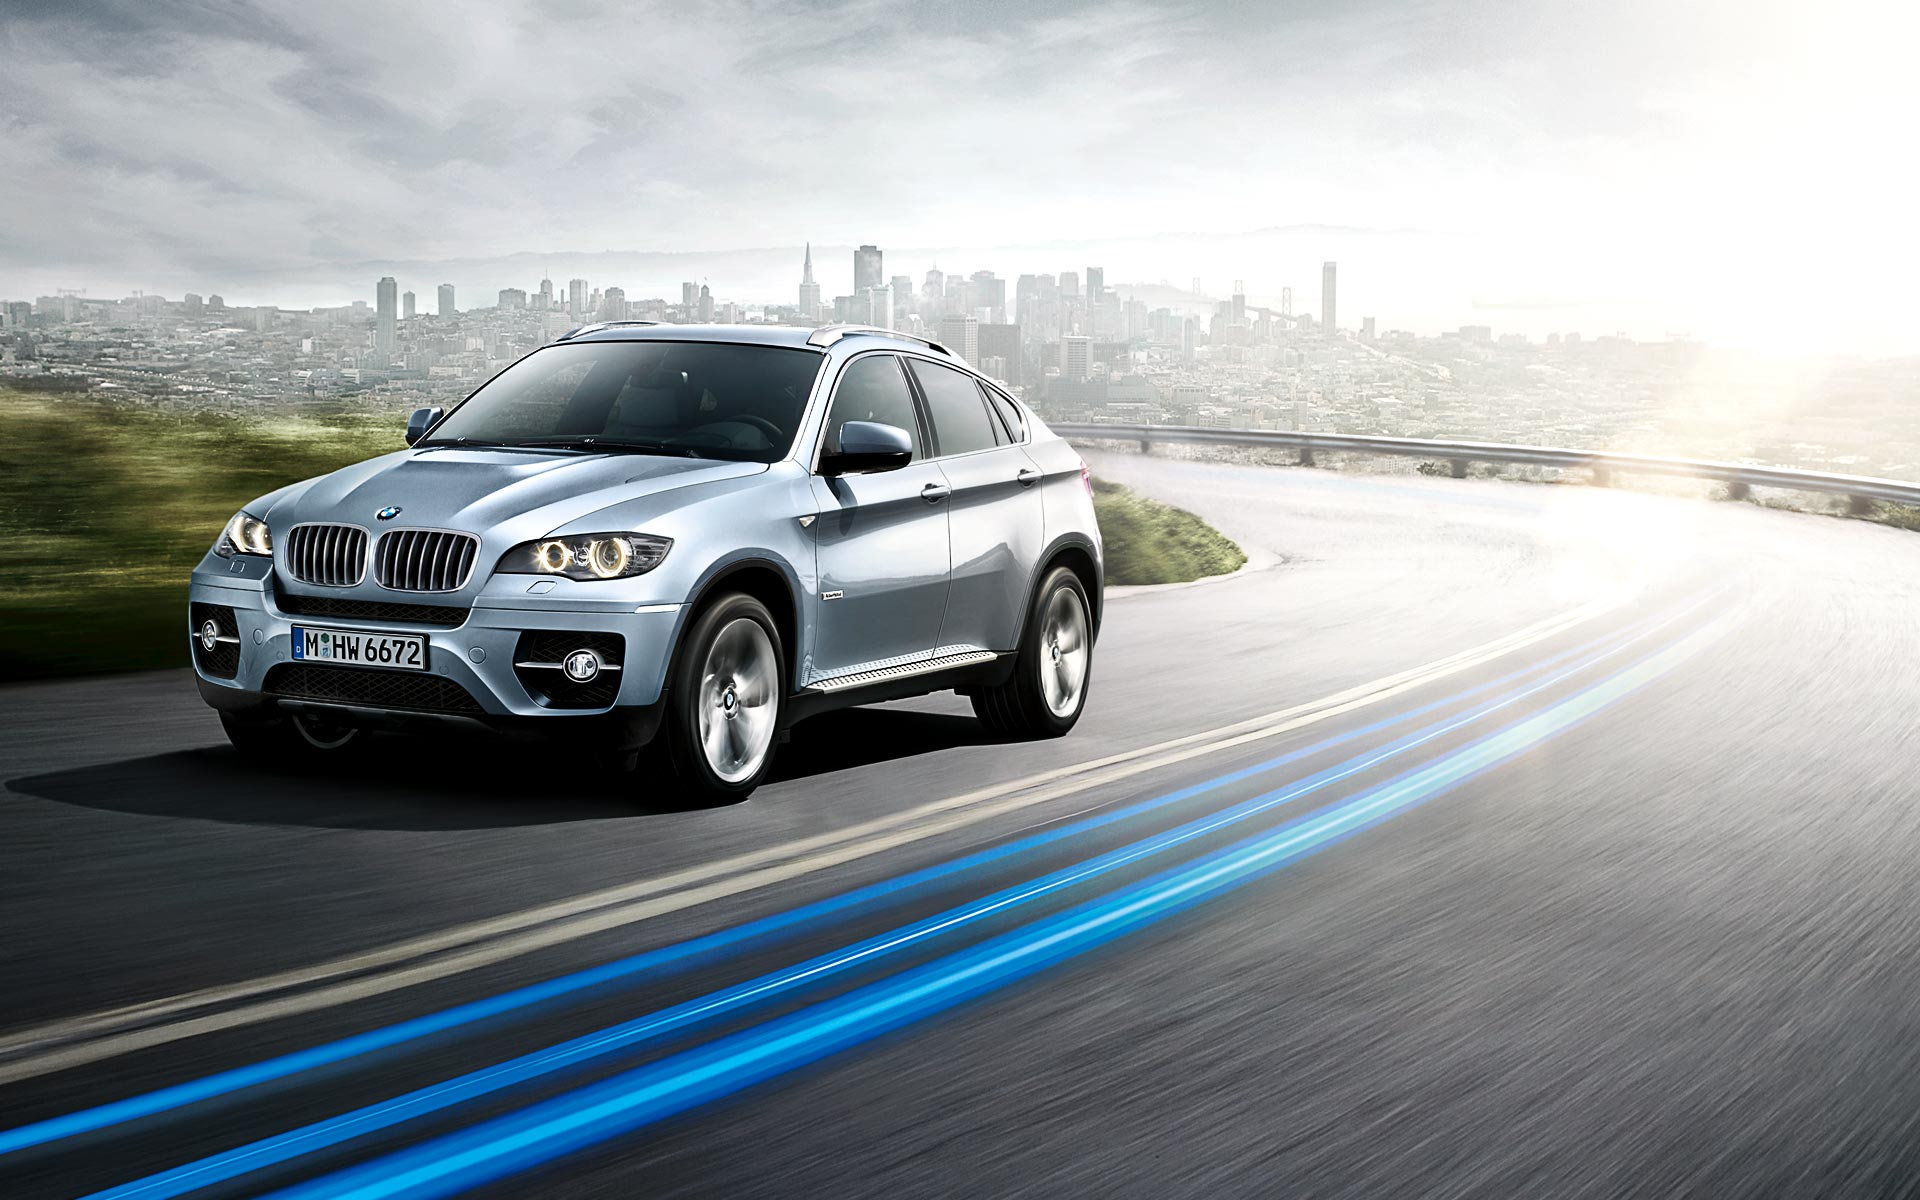 Bmw Activehybrid X6 Priced At 102 900 Euros In Germany